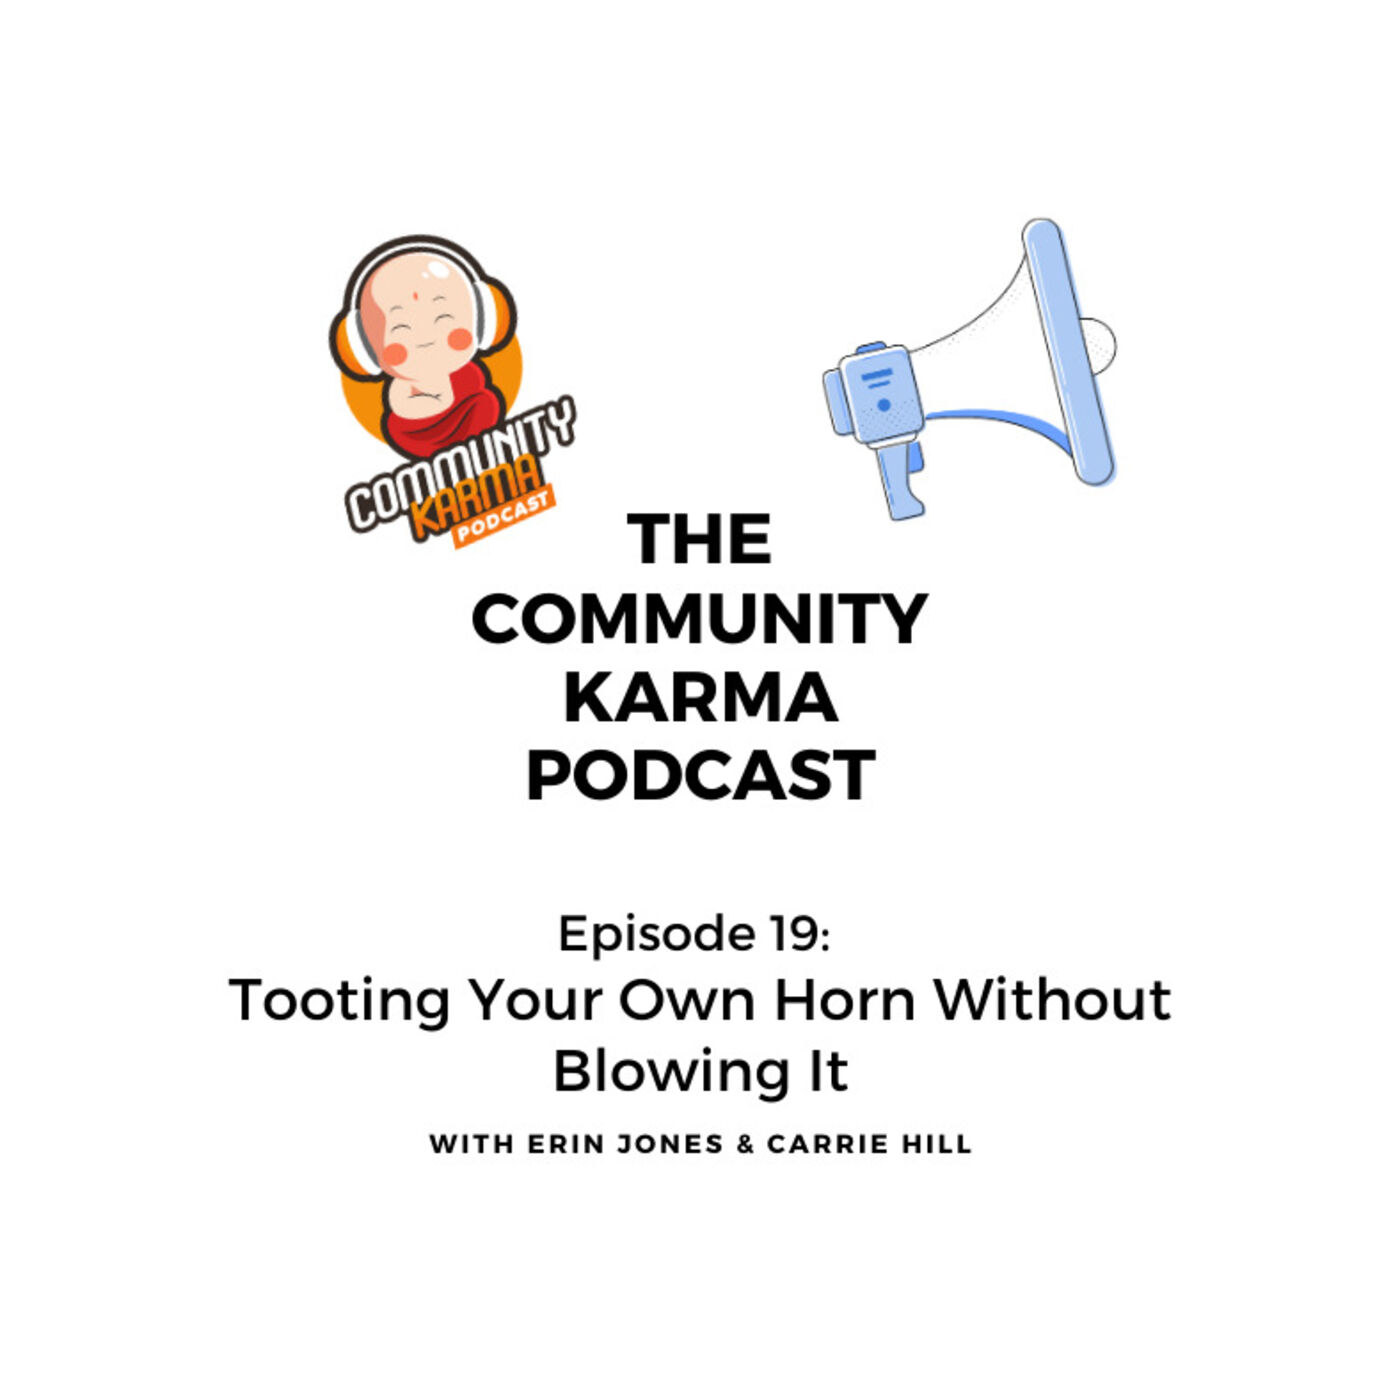 Episode 19: Tooting Your Own Horn Without Blowing It